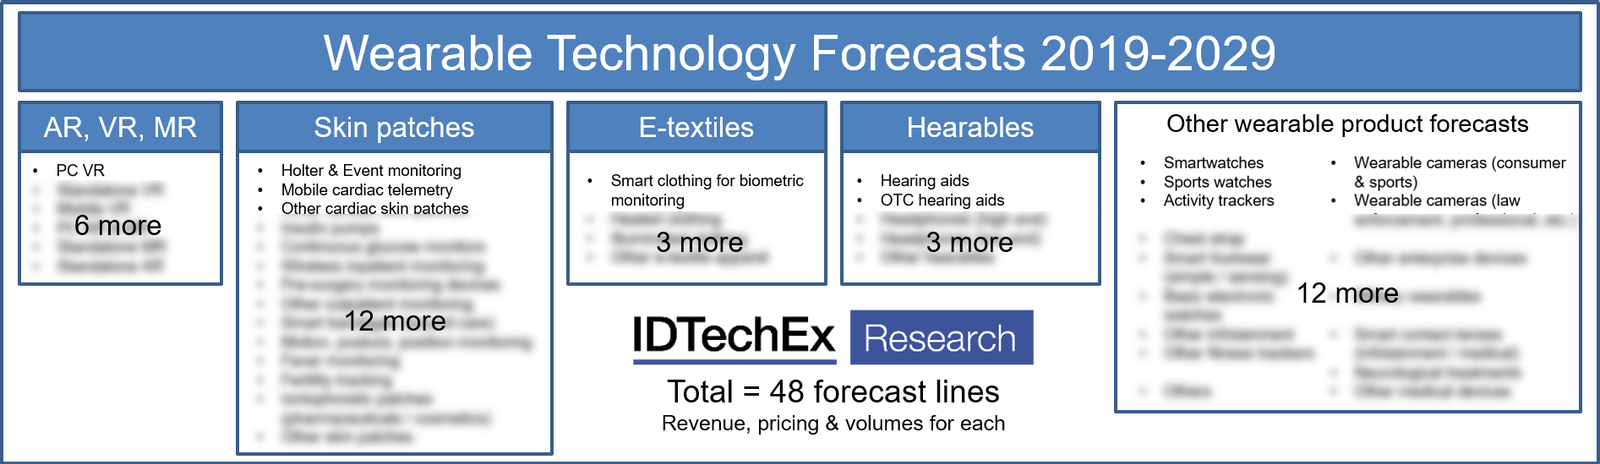 Wearable Technology Forecasts 2019-2029: IDTechEx